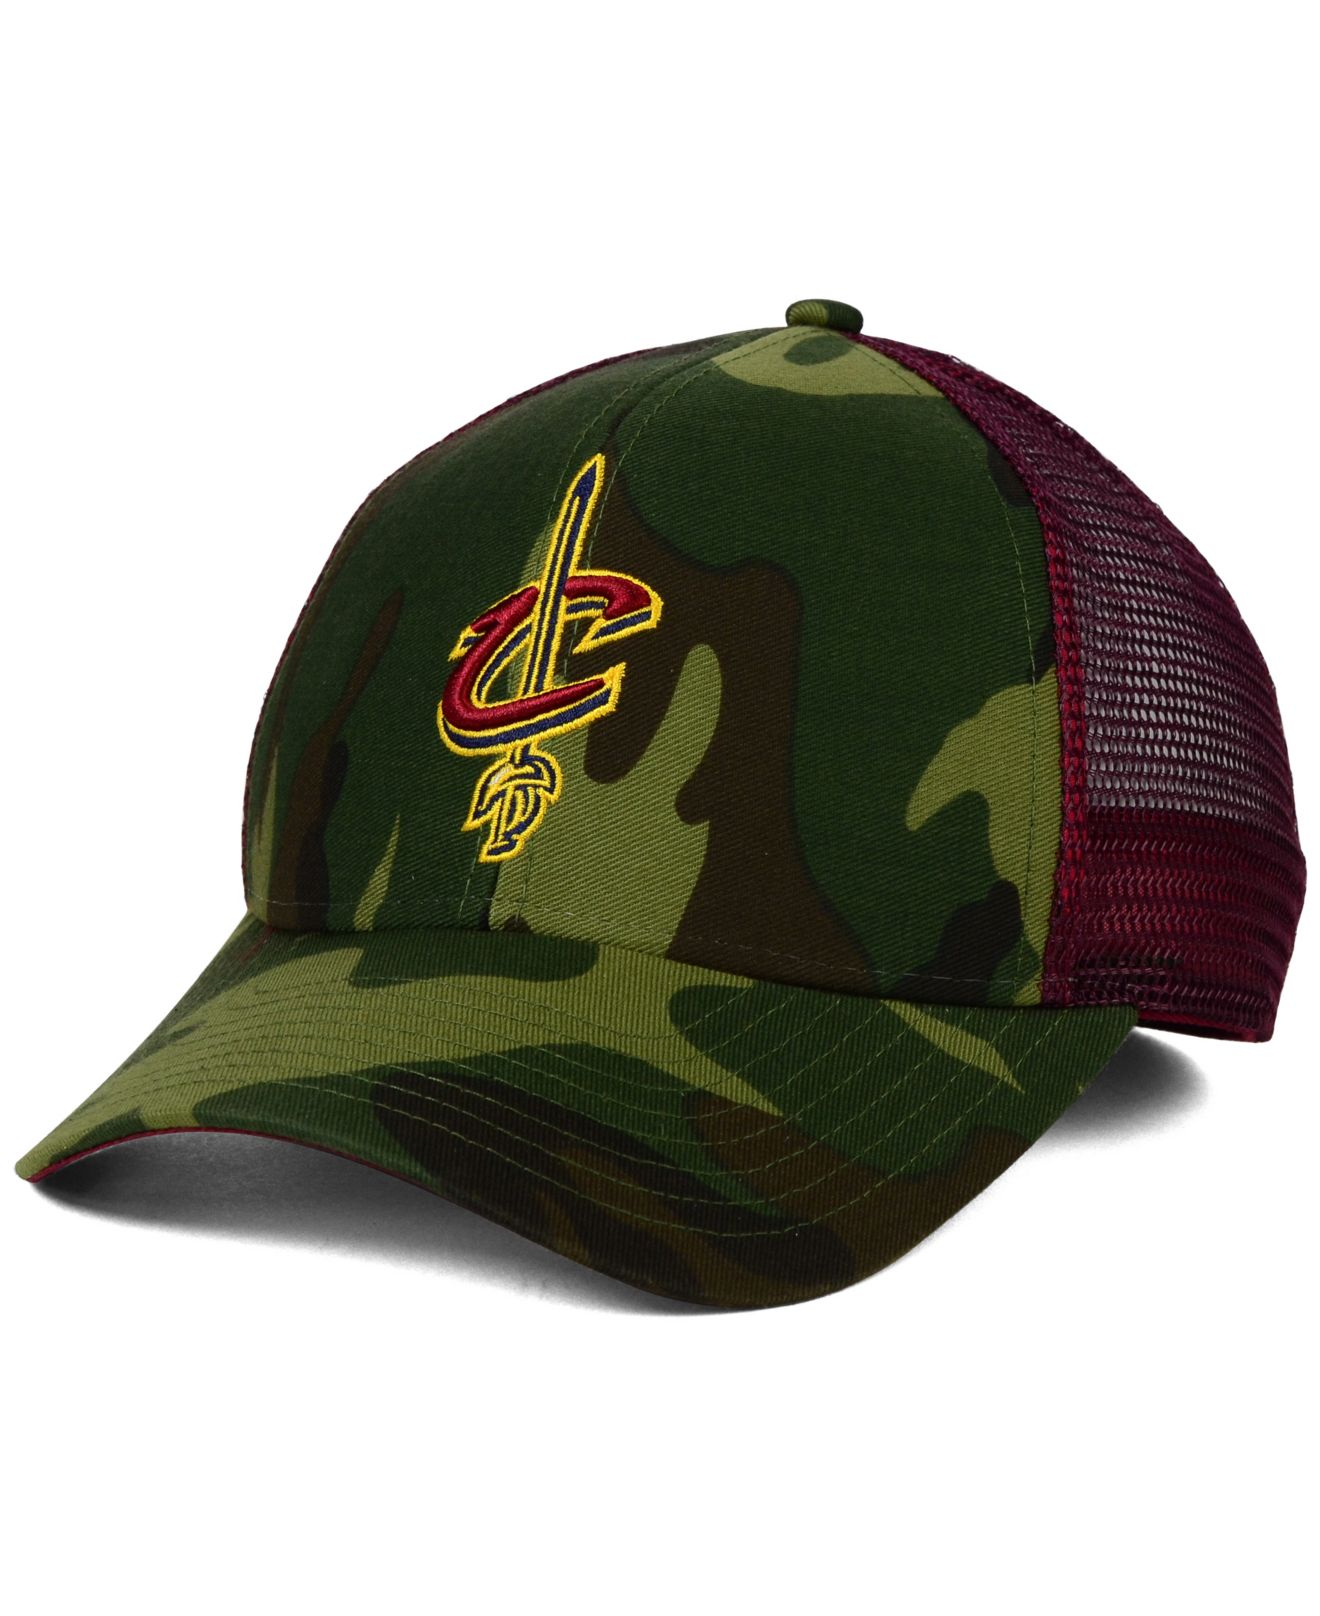 00af64ed520 Lyst - adidas Cleveland Cavaliers Camo Trucker Cap in Green for Men